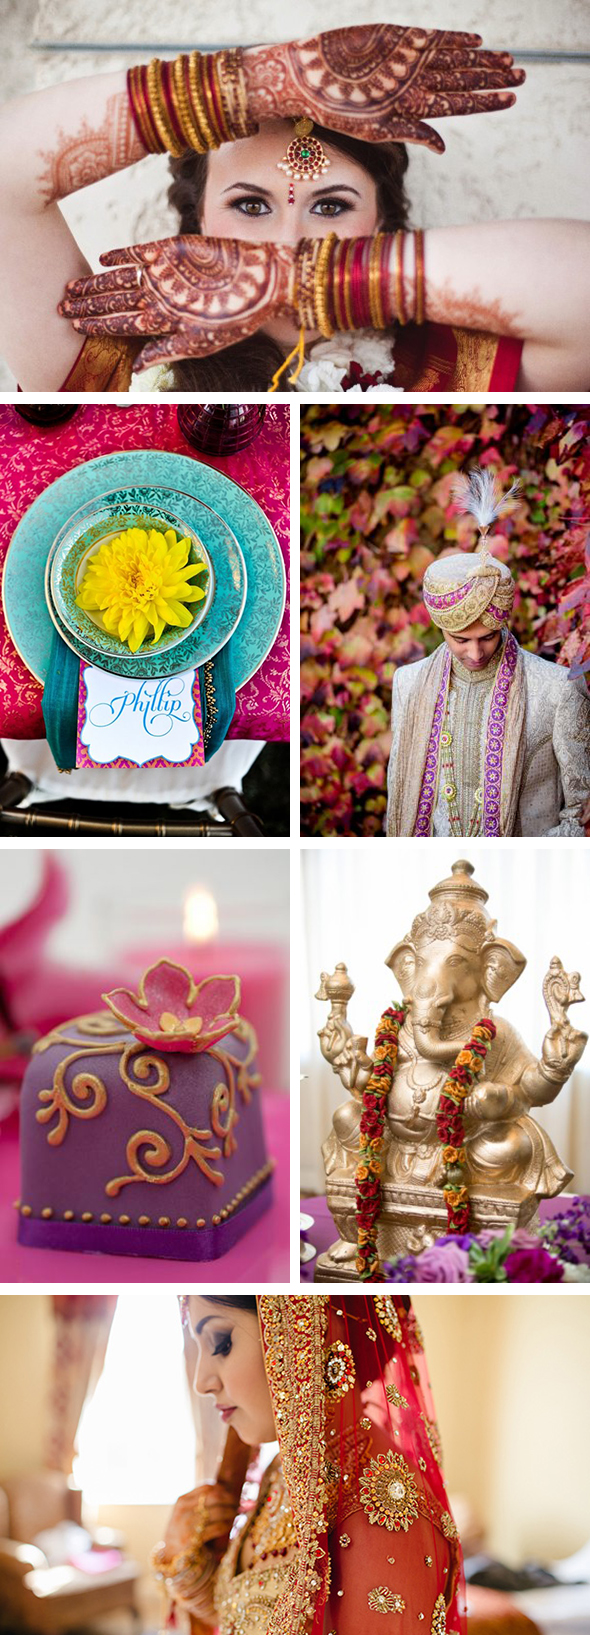 indian wedding deets Indian Wedding Details